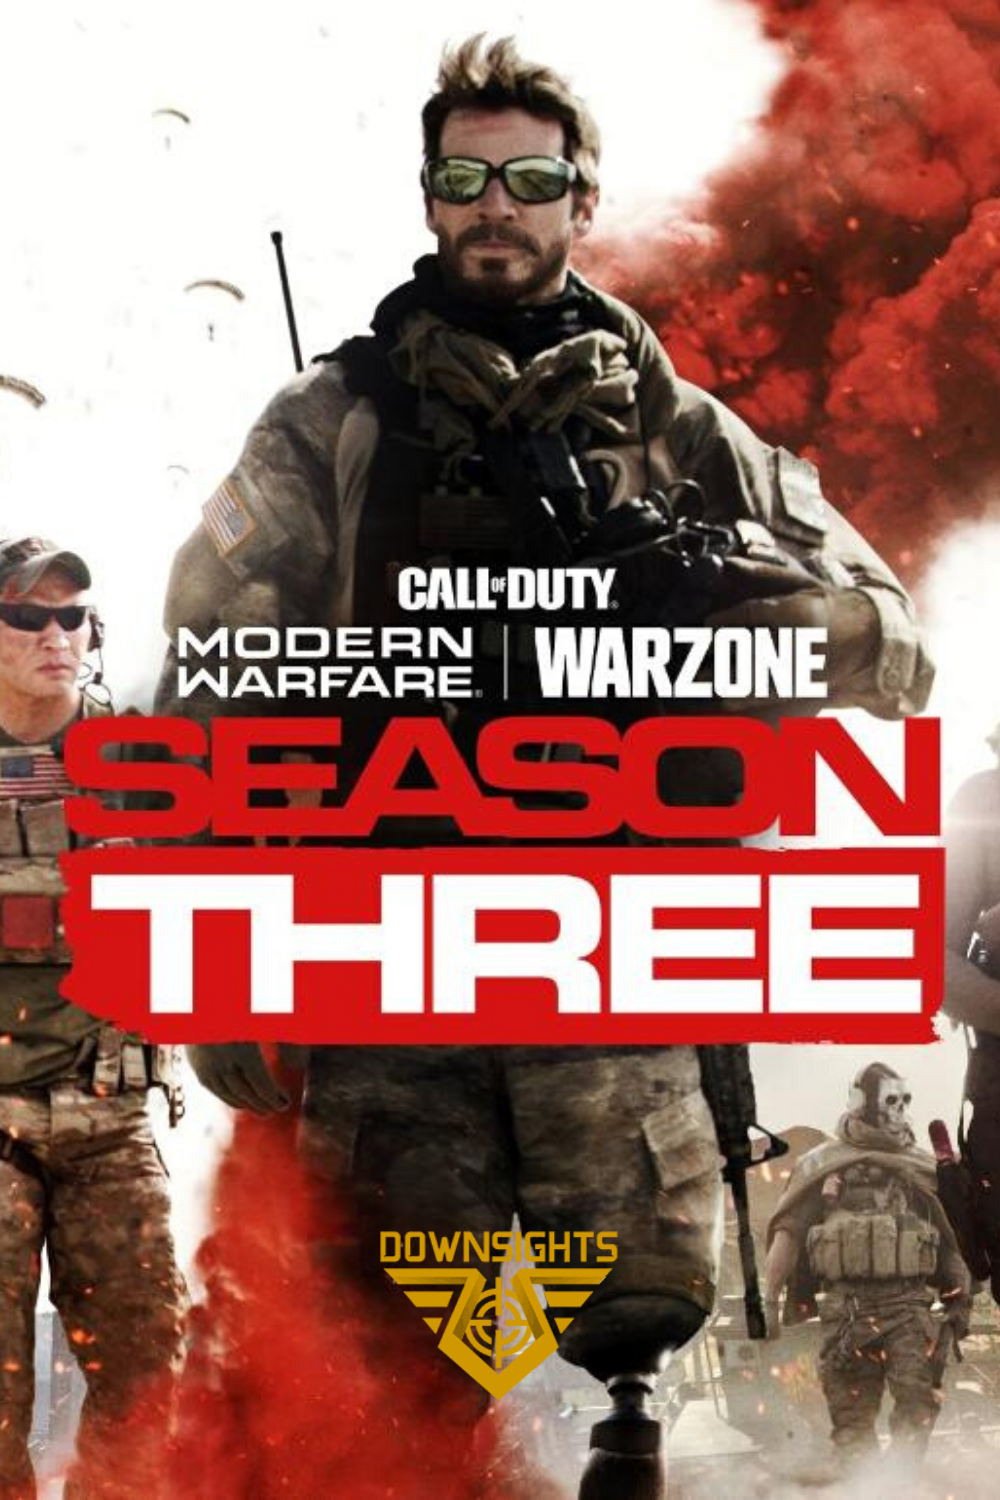 Call Of Duty Warzone Season 3 Starting April 8 In 2020 Call Of Duty Modern Warfare Battle Royale Game